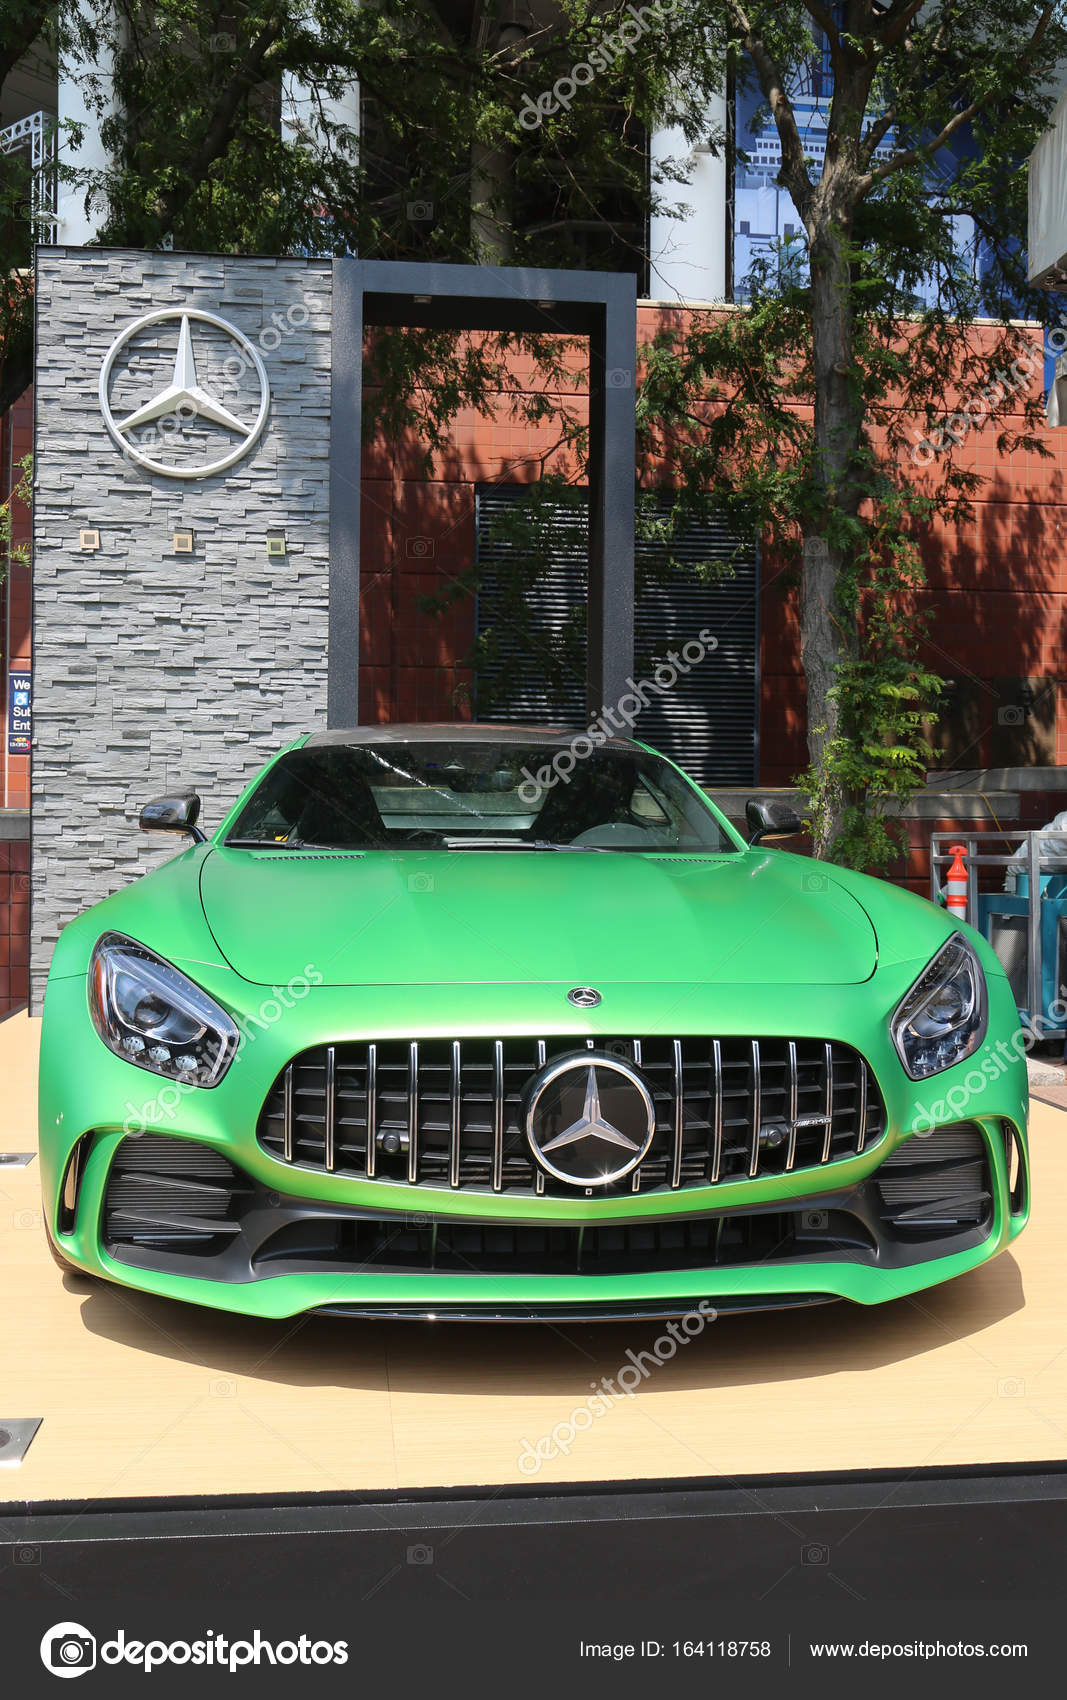 hight resolution of mercedes benz amg on display at national tennis center during us open 2017 stock